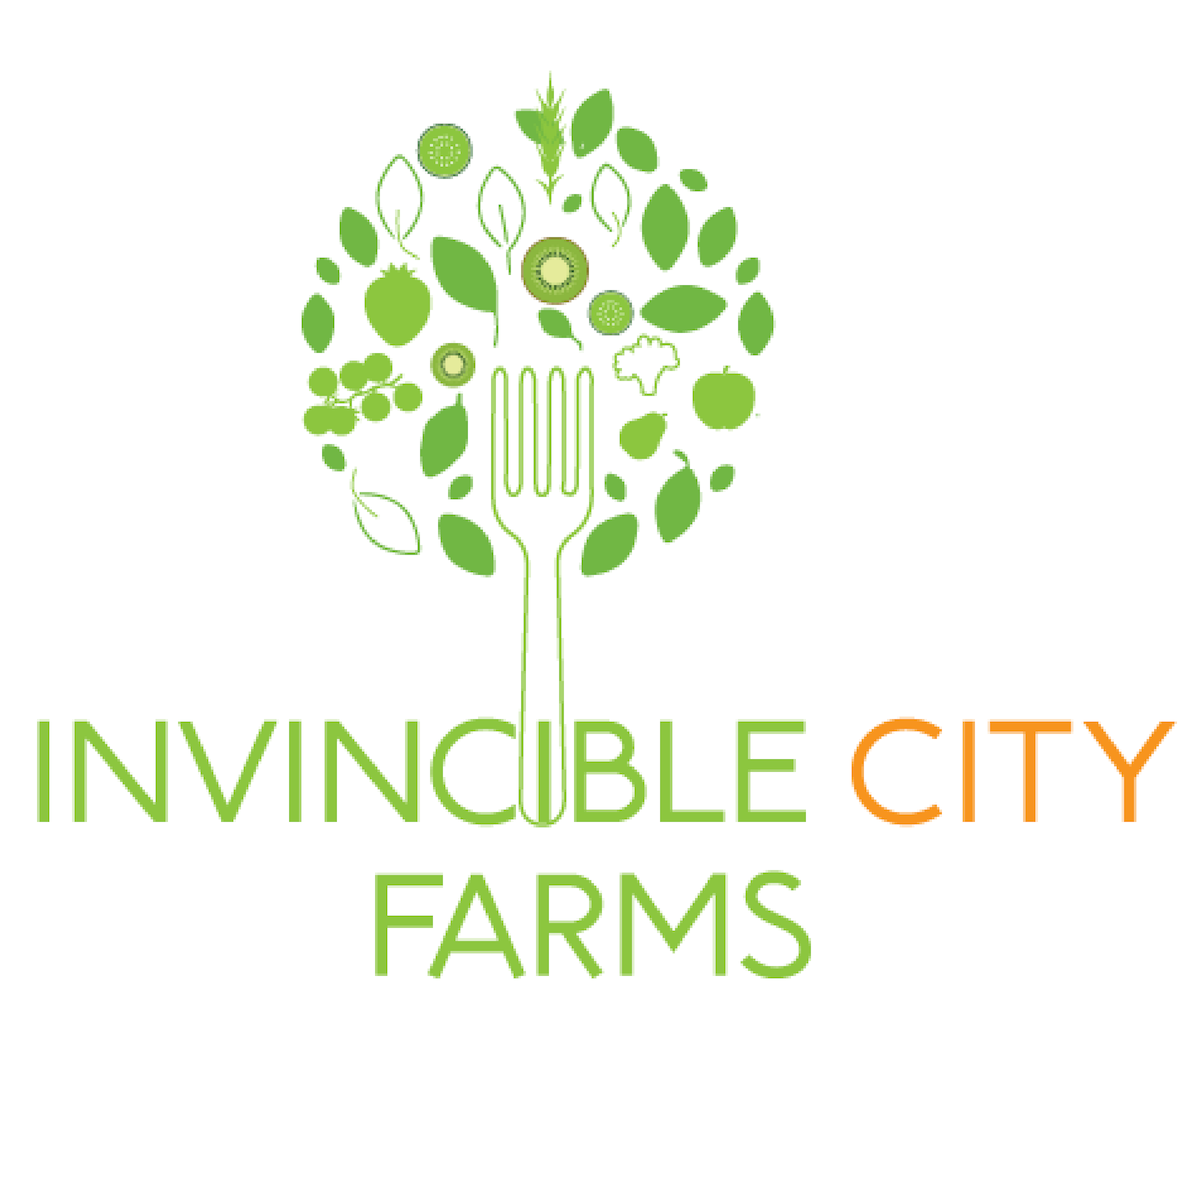 Invincible City Farms